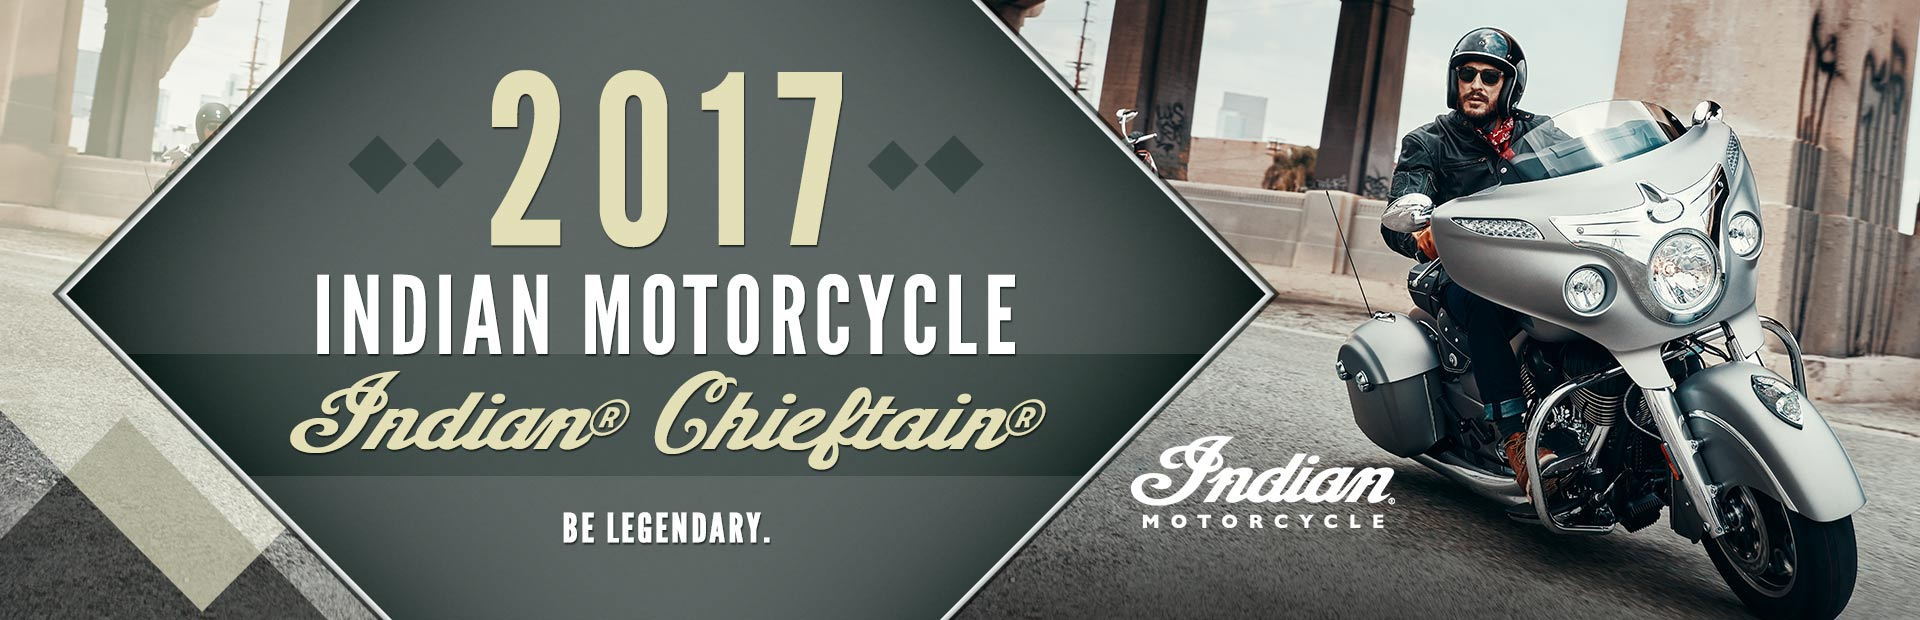 2017 Indian Motorcycle Indian® Chieftain®: Click here to view the model.